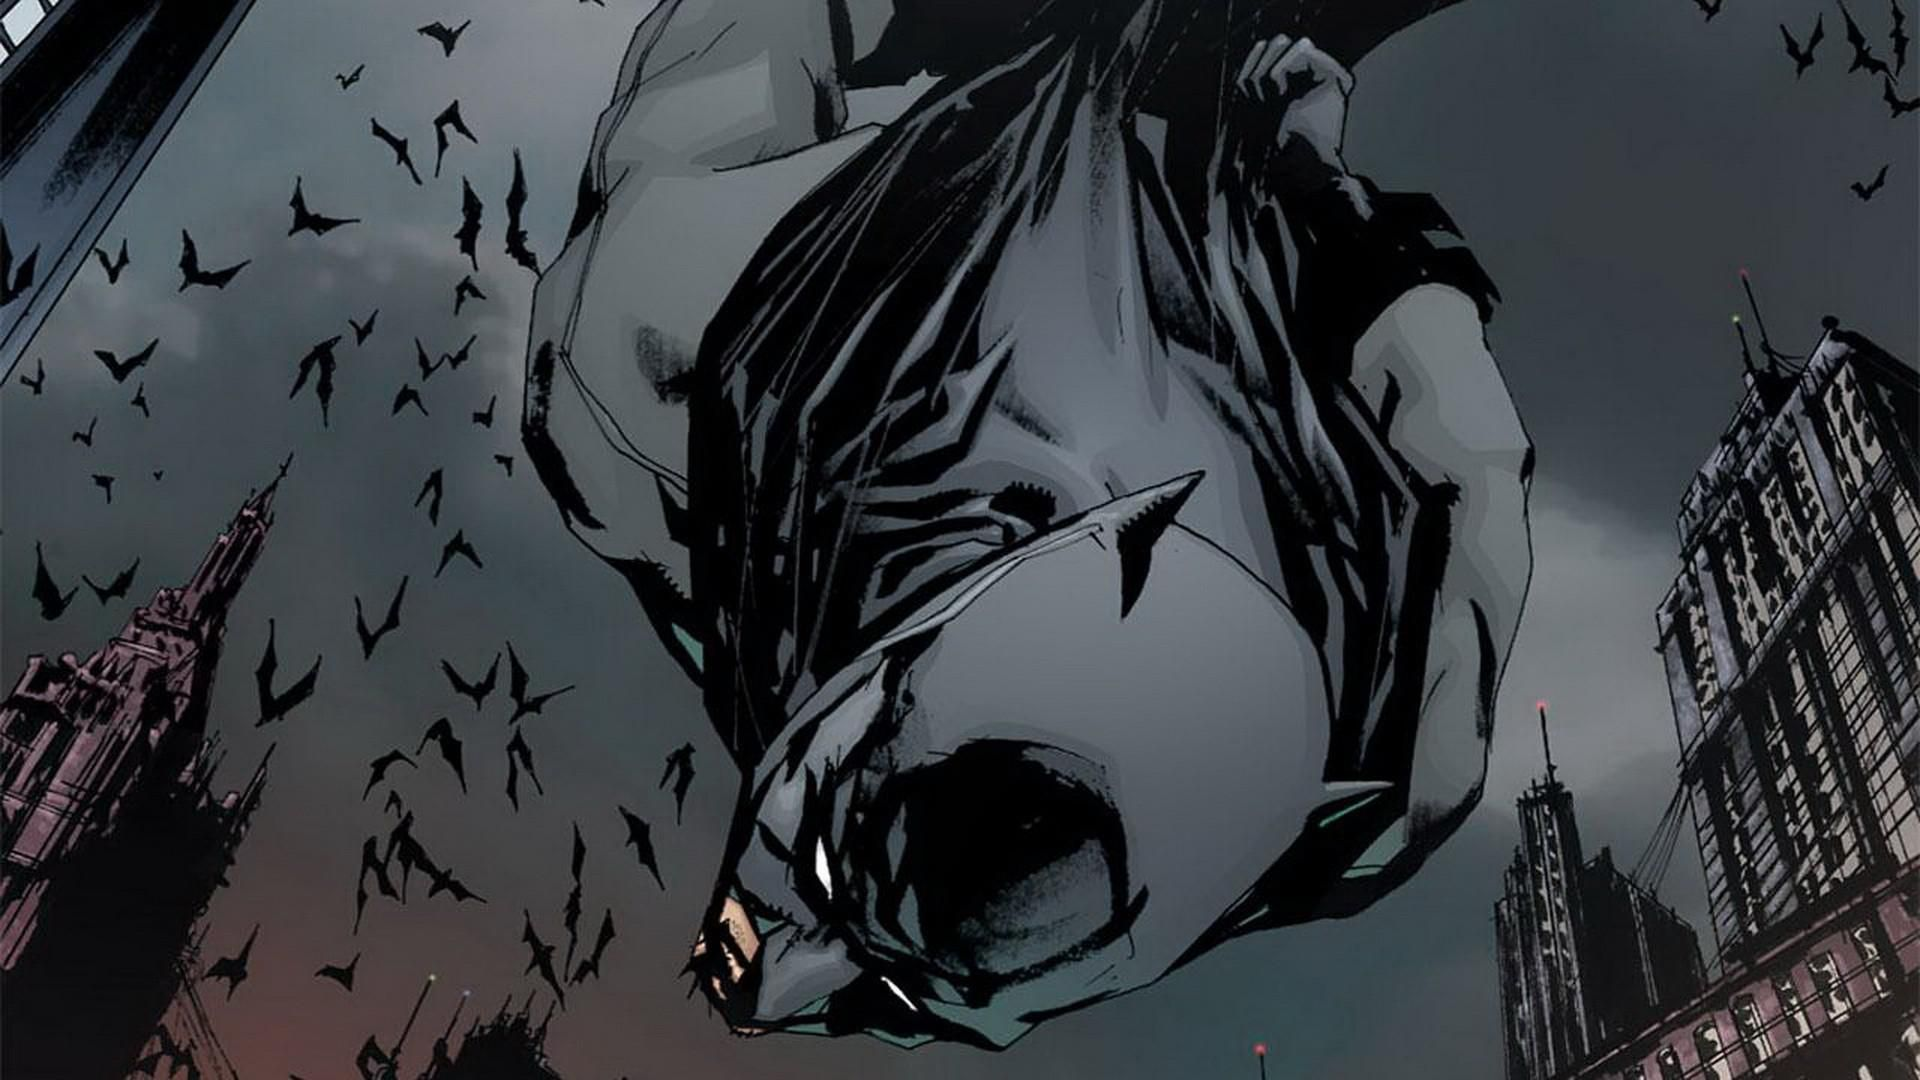 Detective Comics Is An American Comic Book Series Published